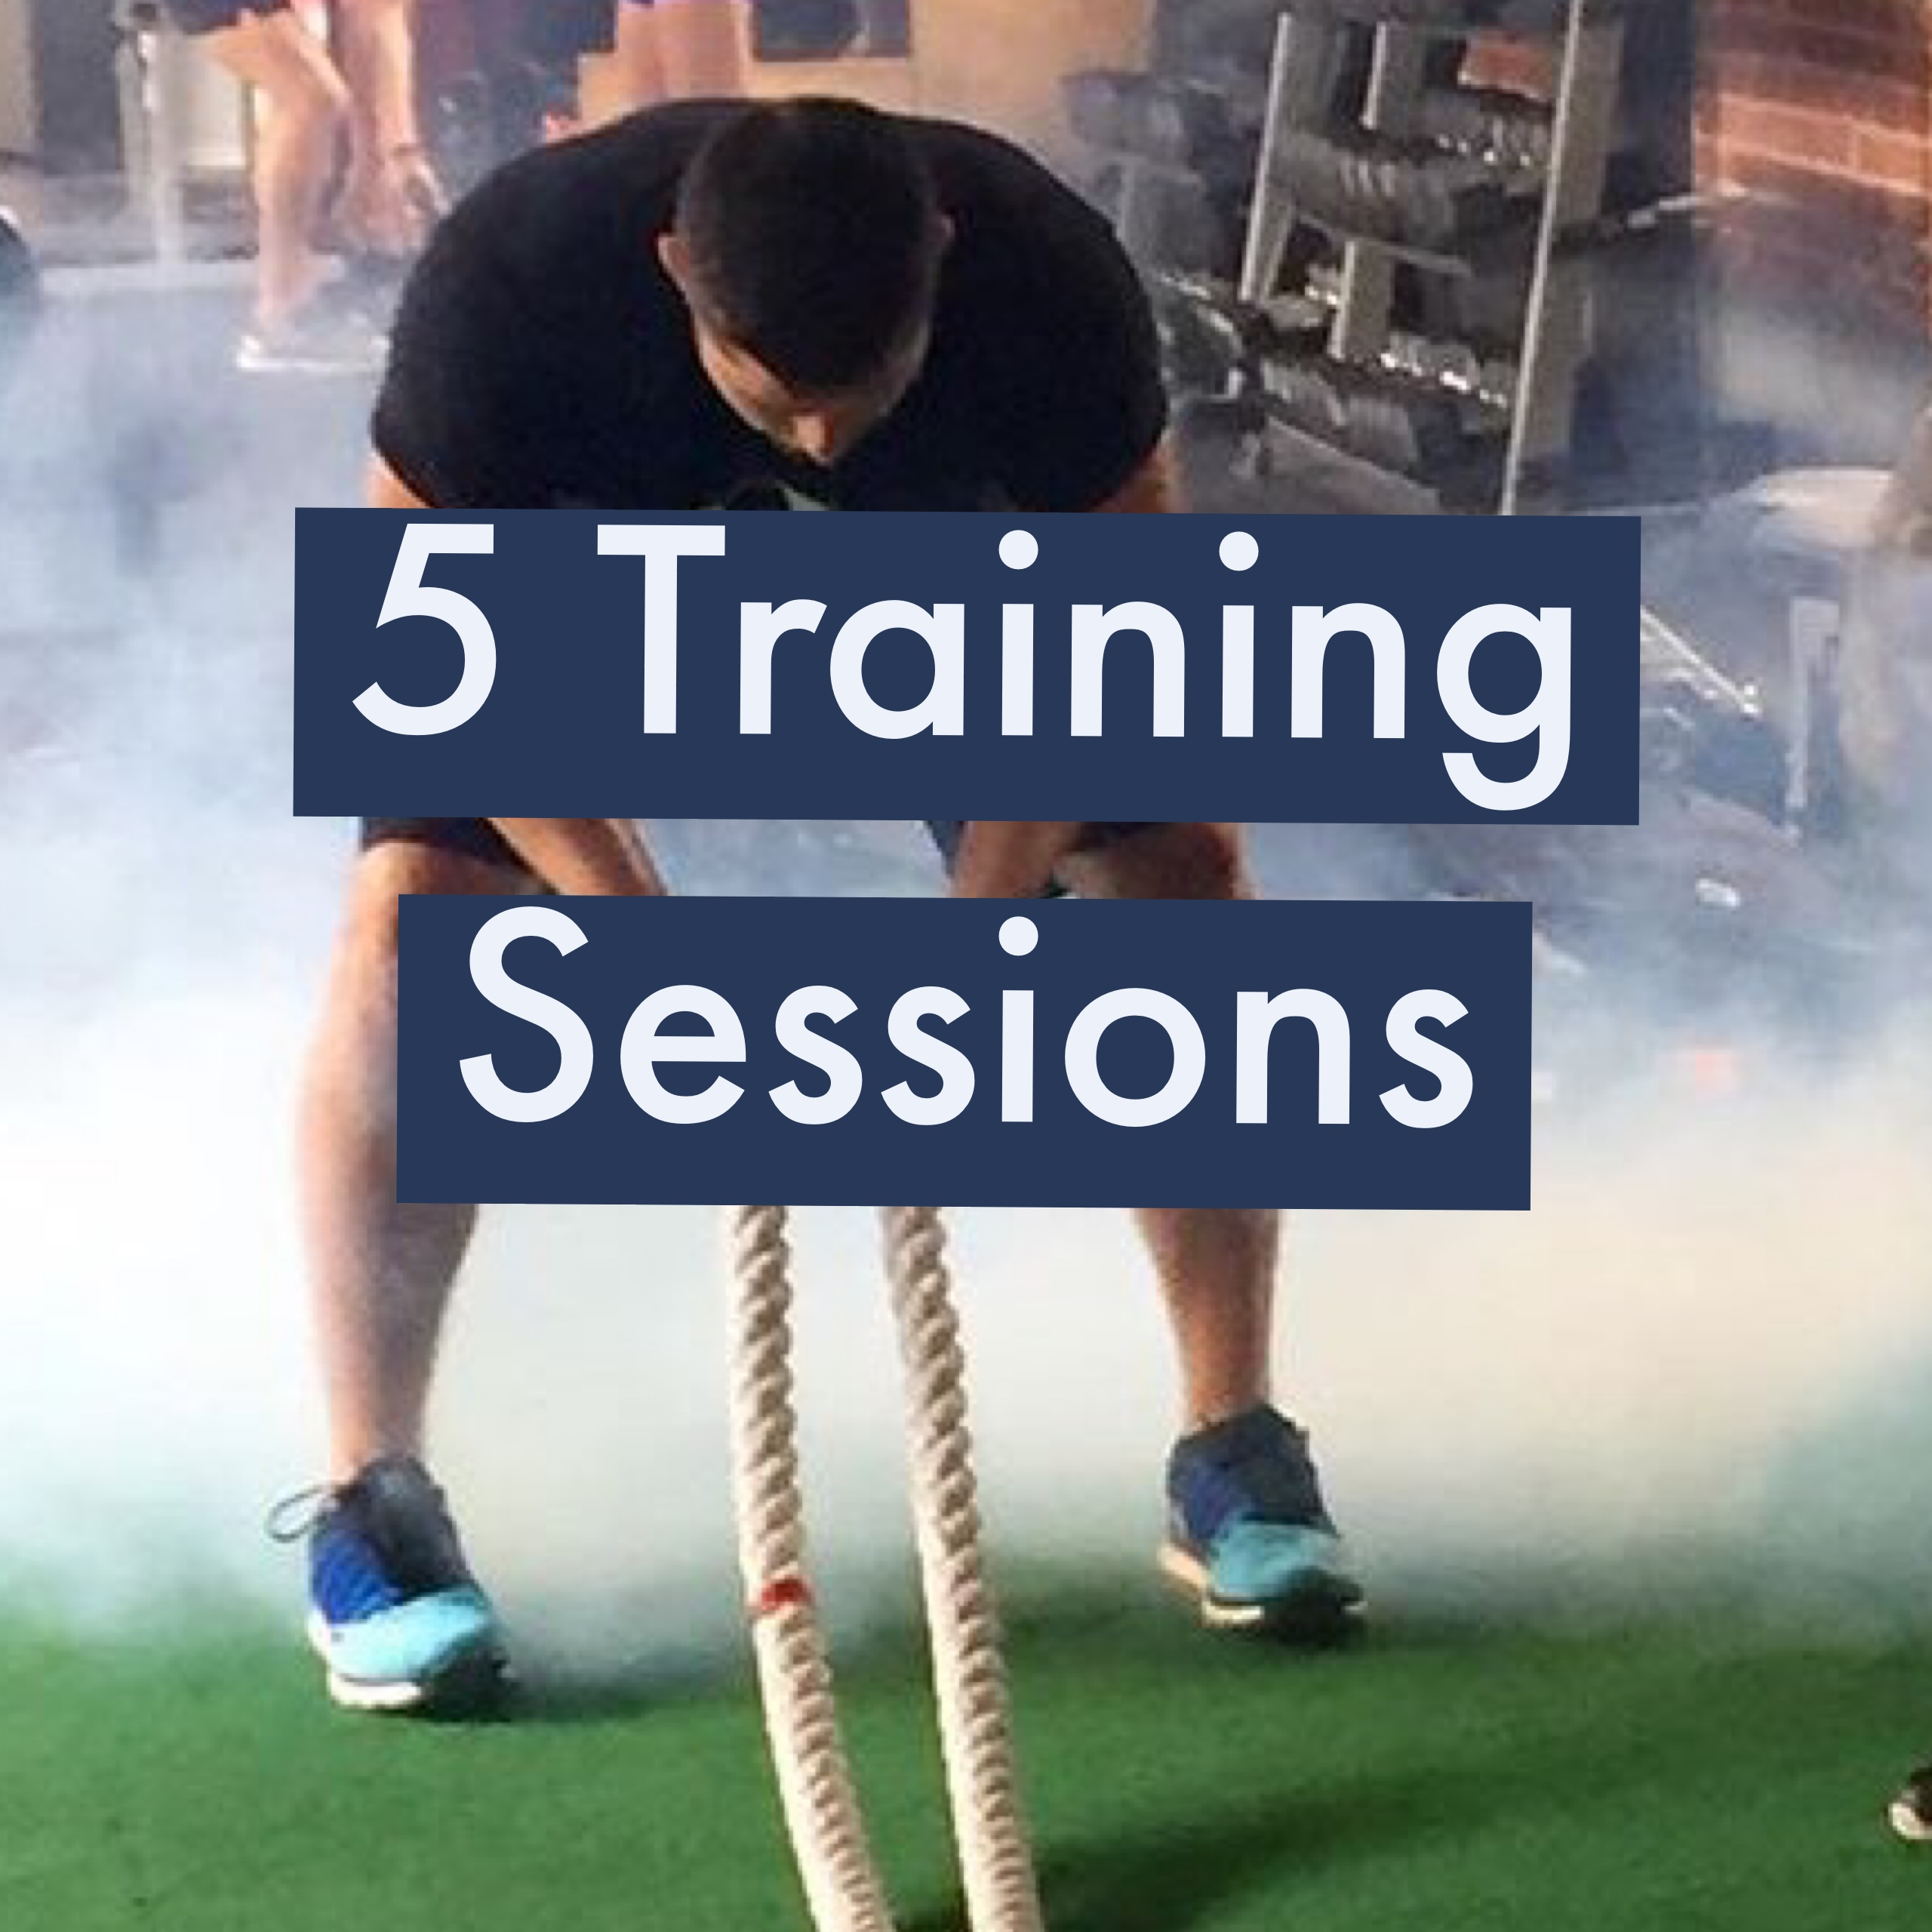 5- 30 Minute Training Sessions